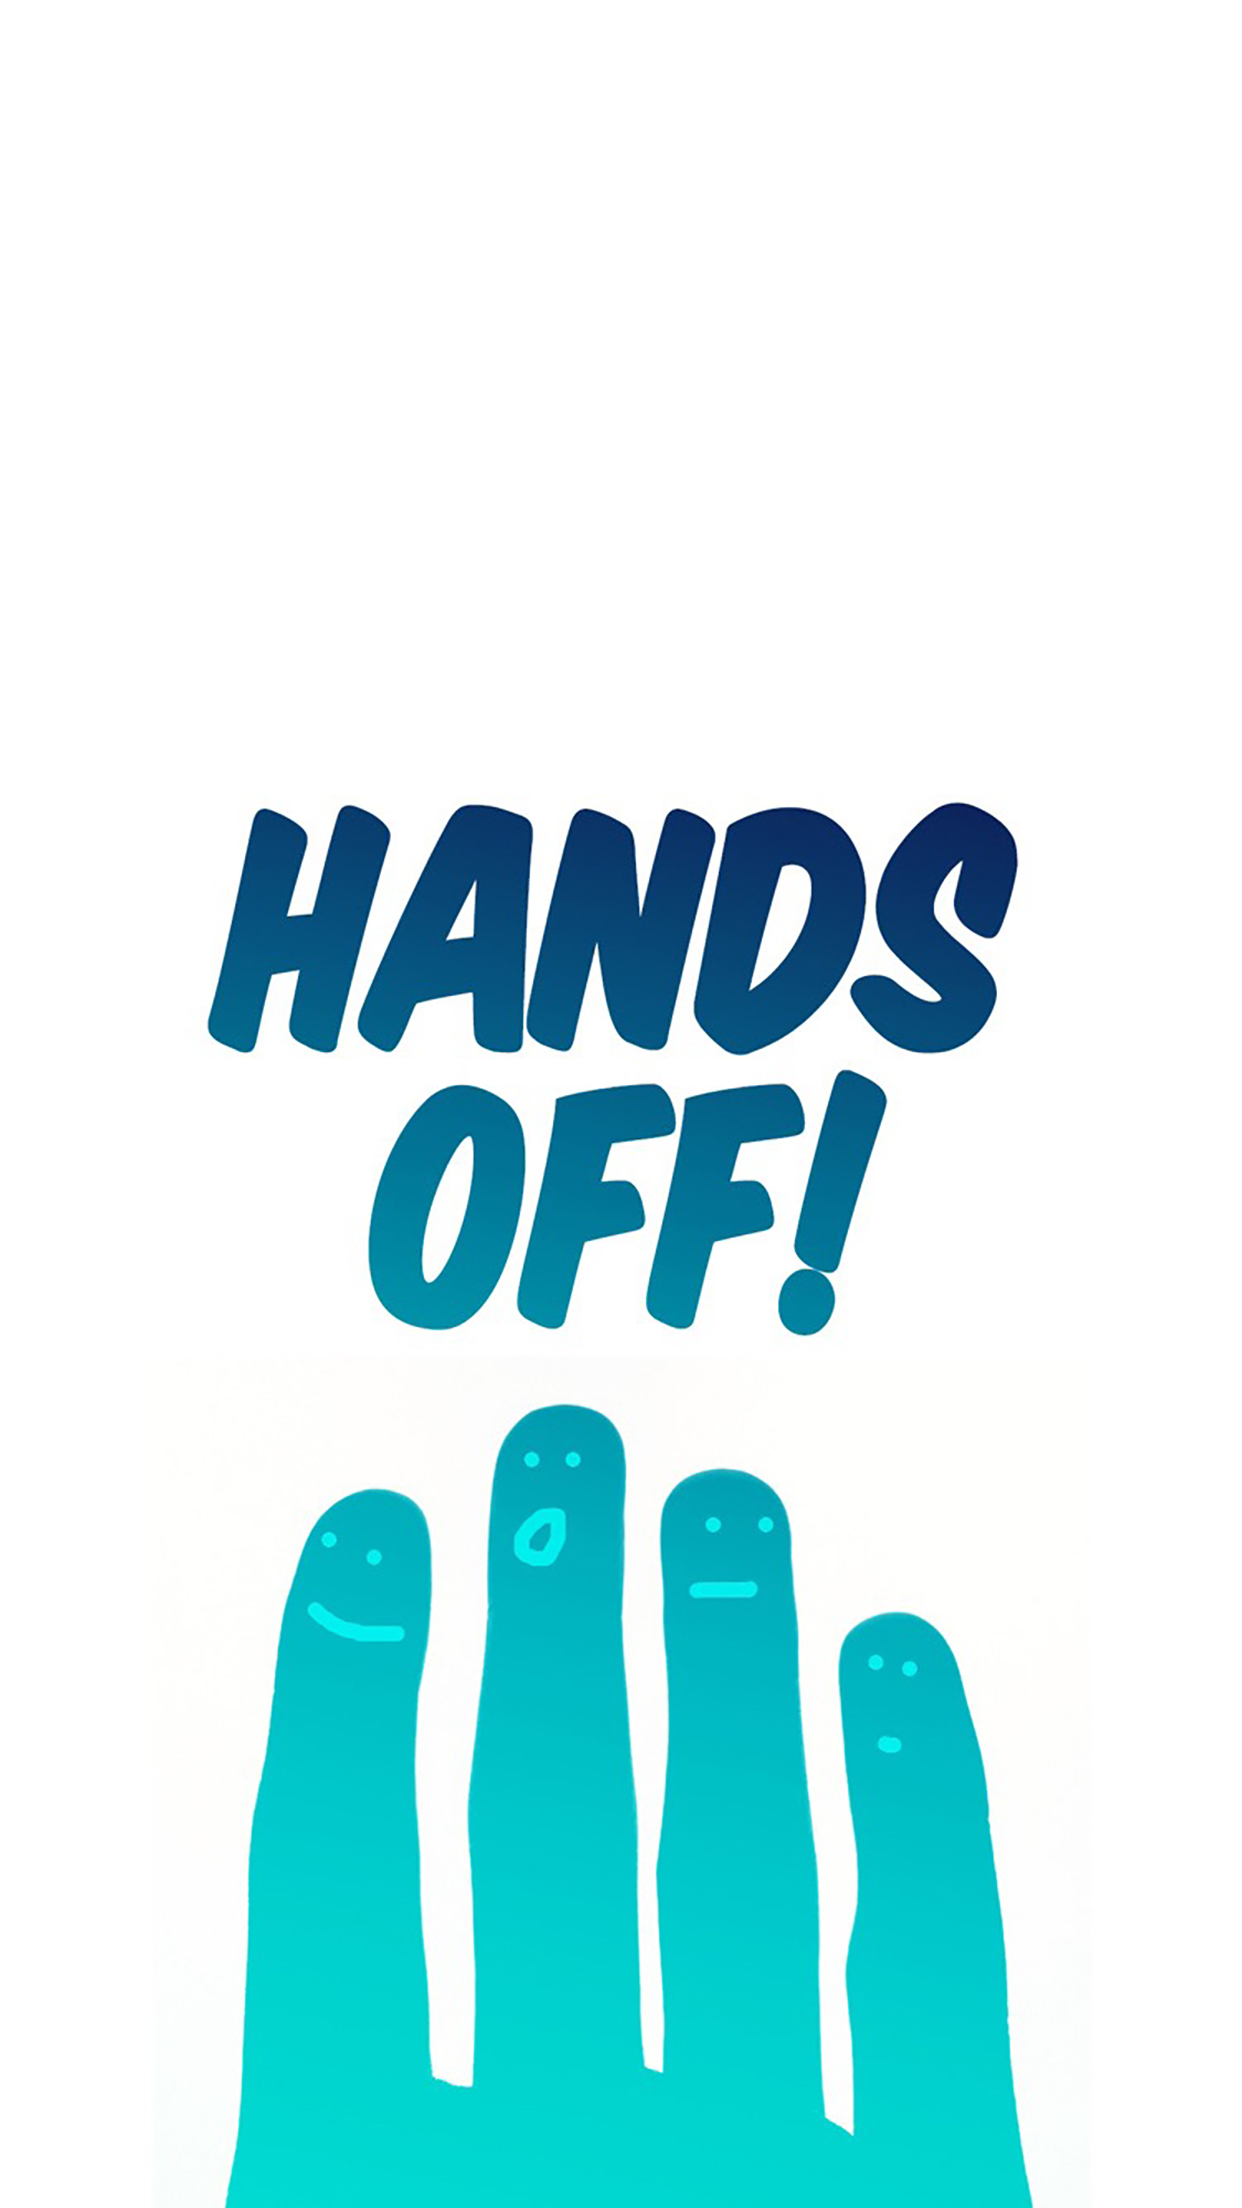 Advices Hands Off 3Wallpapers iPhone Parallax Advices : Hands Off